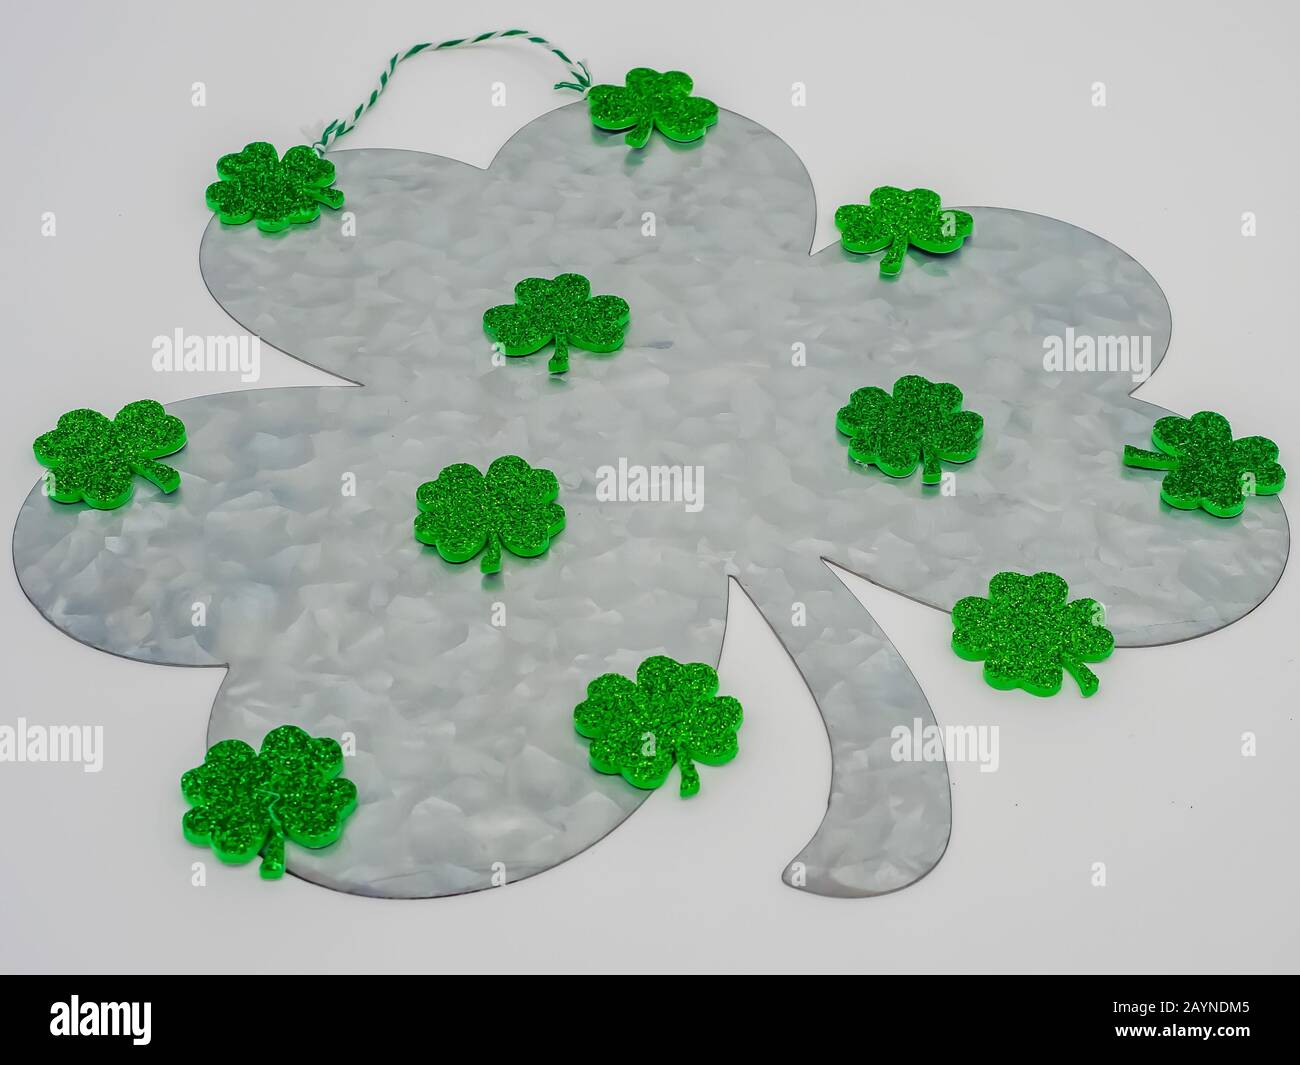 Large rustic metal four clover with small green sparkly four leaf clovers all over it, for St. Patrick's Day. Stock Photo